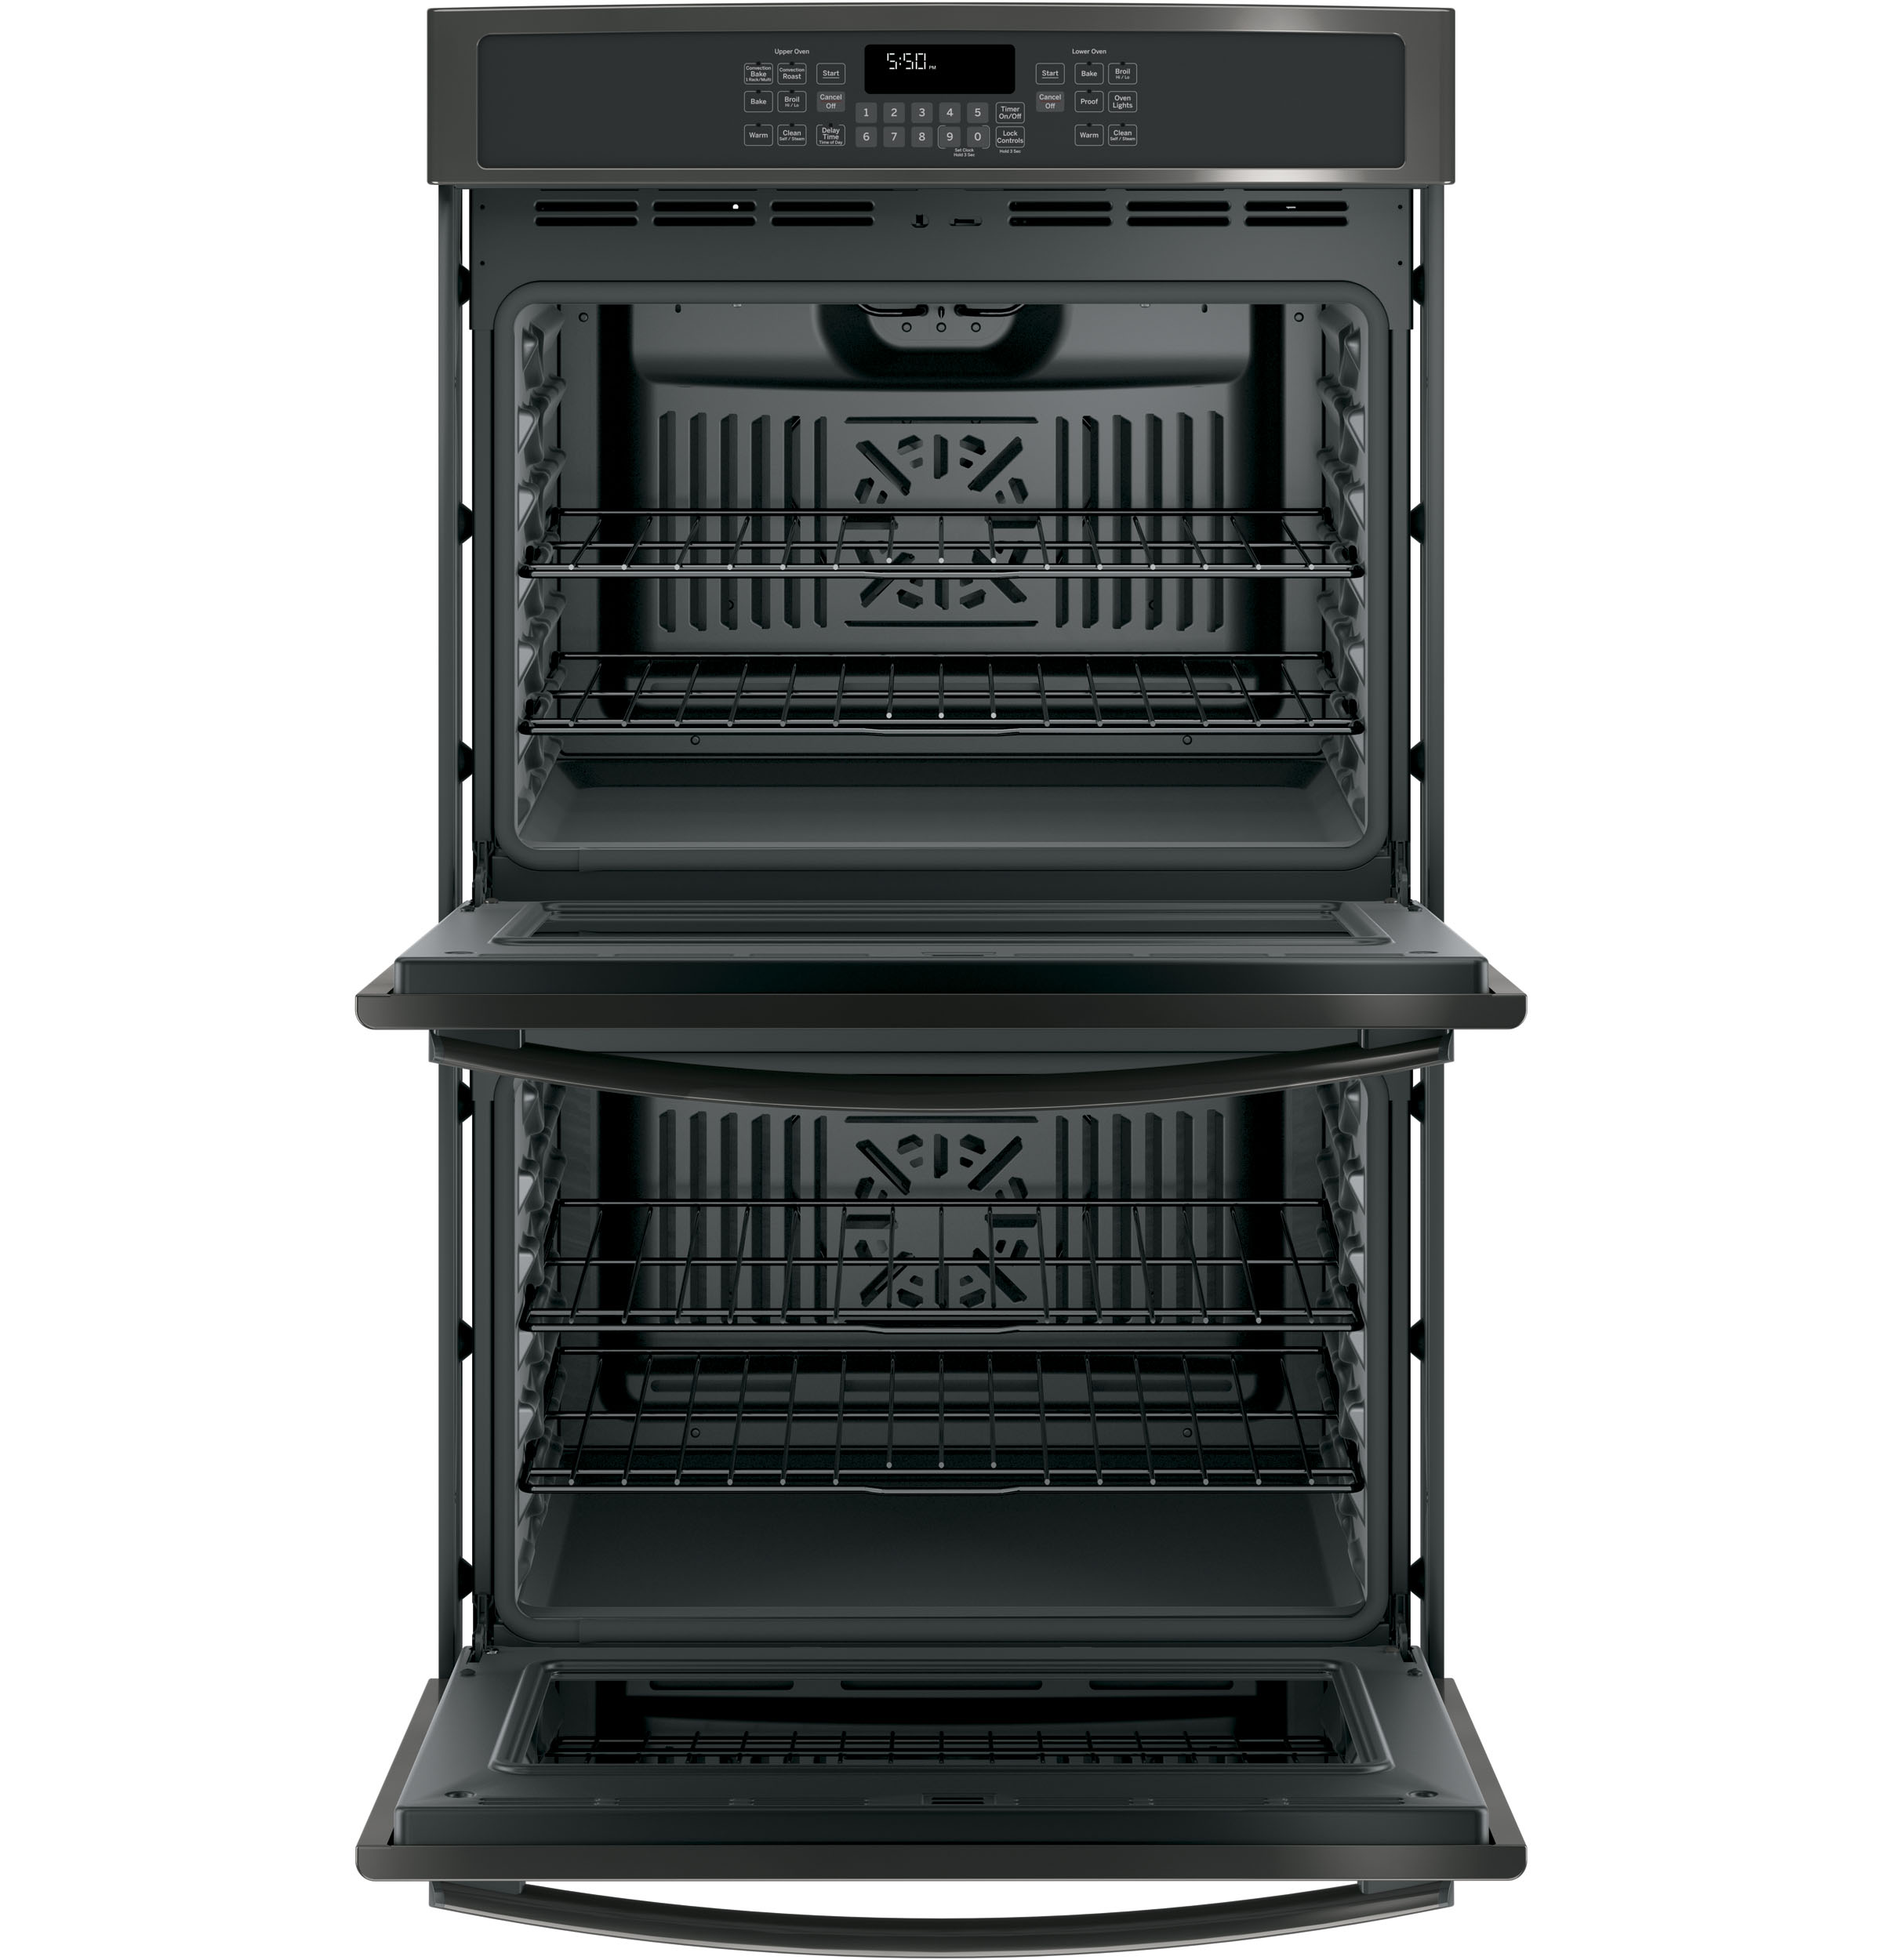 "Model: JT5500BLTS | GE GE® 30"" Built-In Double Wall Oven with Convection"